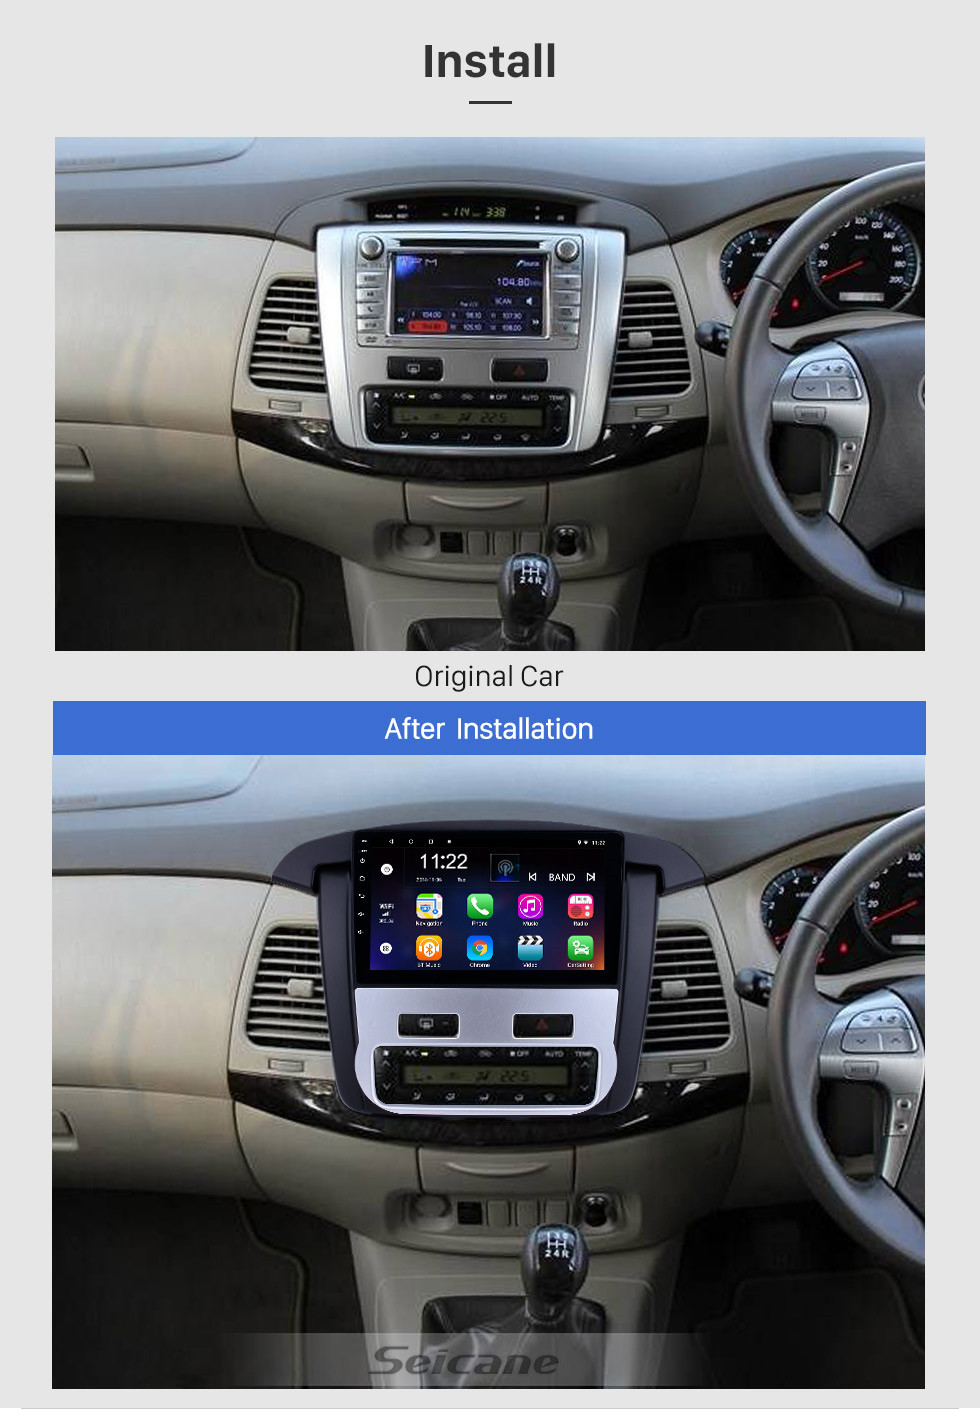 Seicane Android 10.0 9 inch Touchscreen GPS Navigation Radio for 2012-2014 Toyota innova Auto A/C with Bluetooth USB WIFI support Carplay SWC Rearview camera